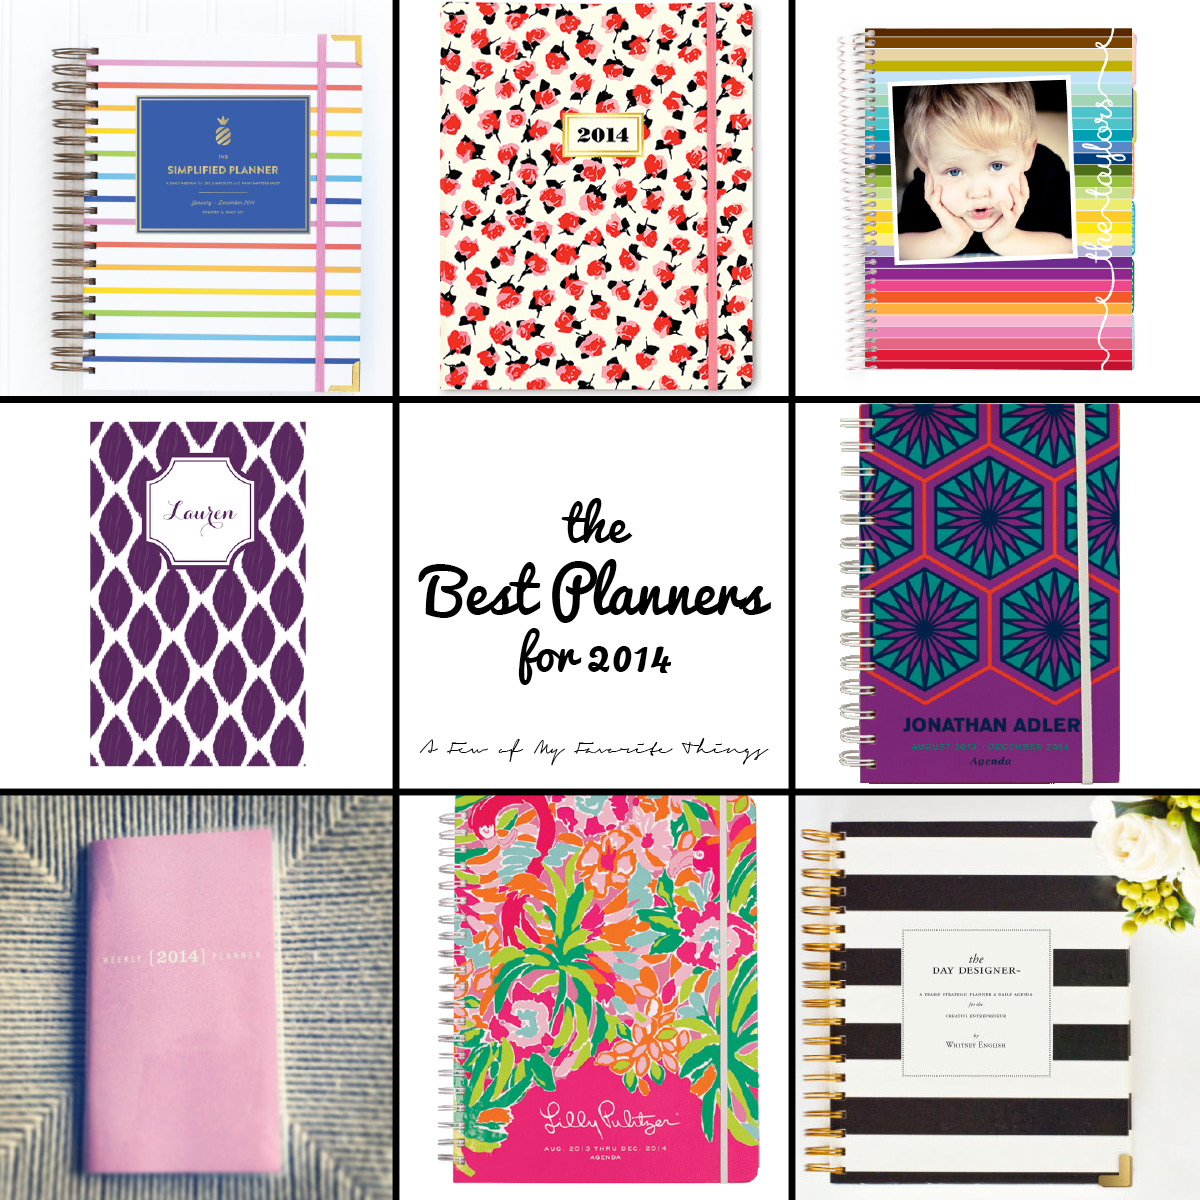 Best Planners for 2014